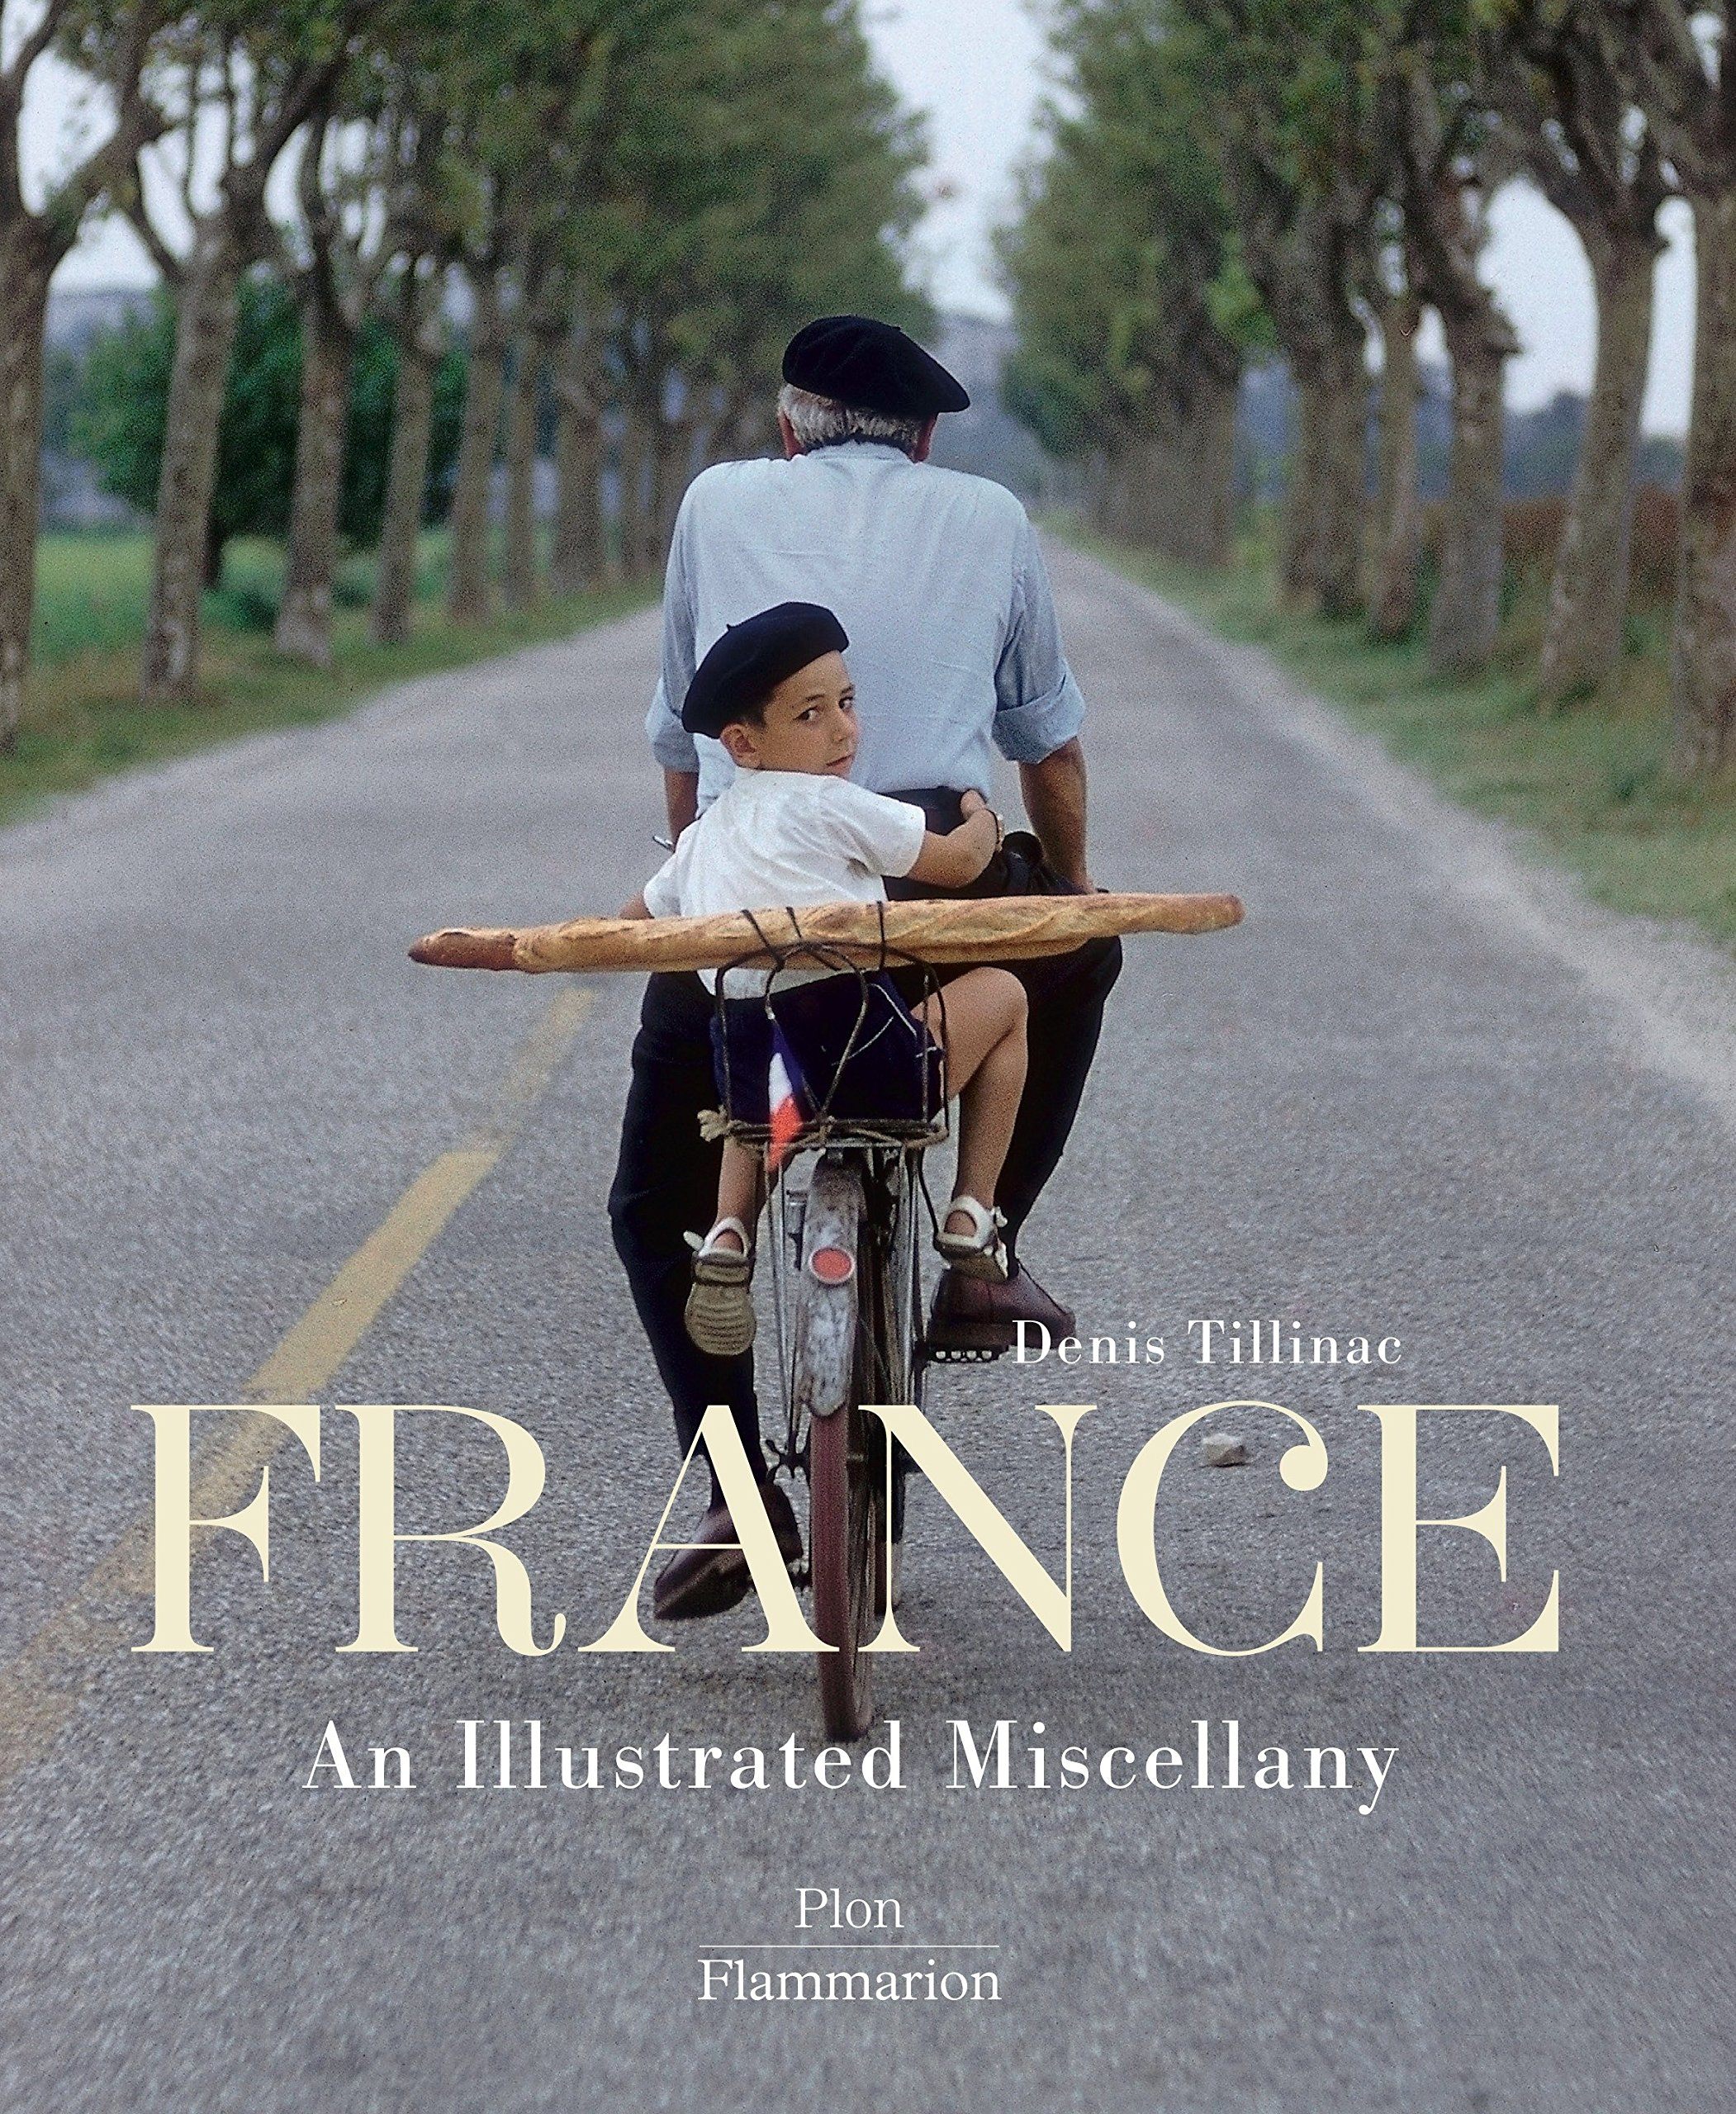 France: An Illustrated Miscellany pdf